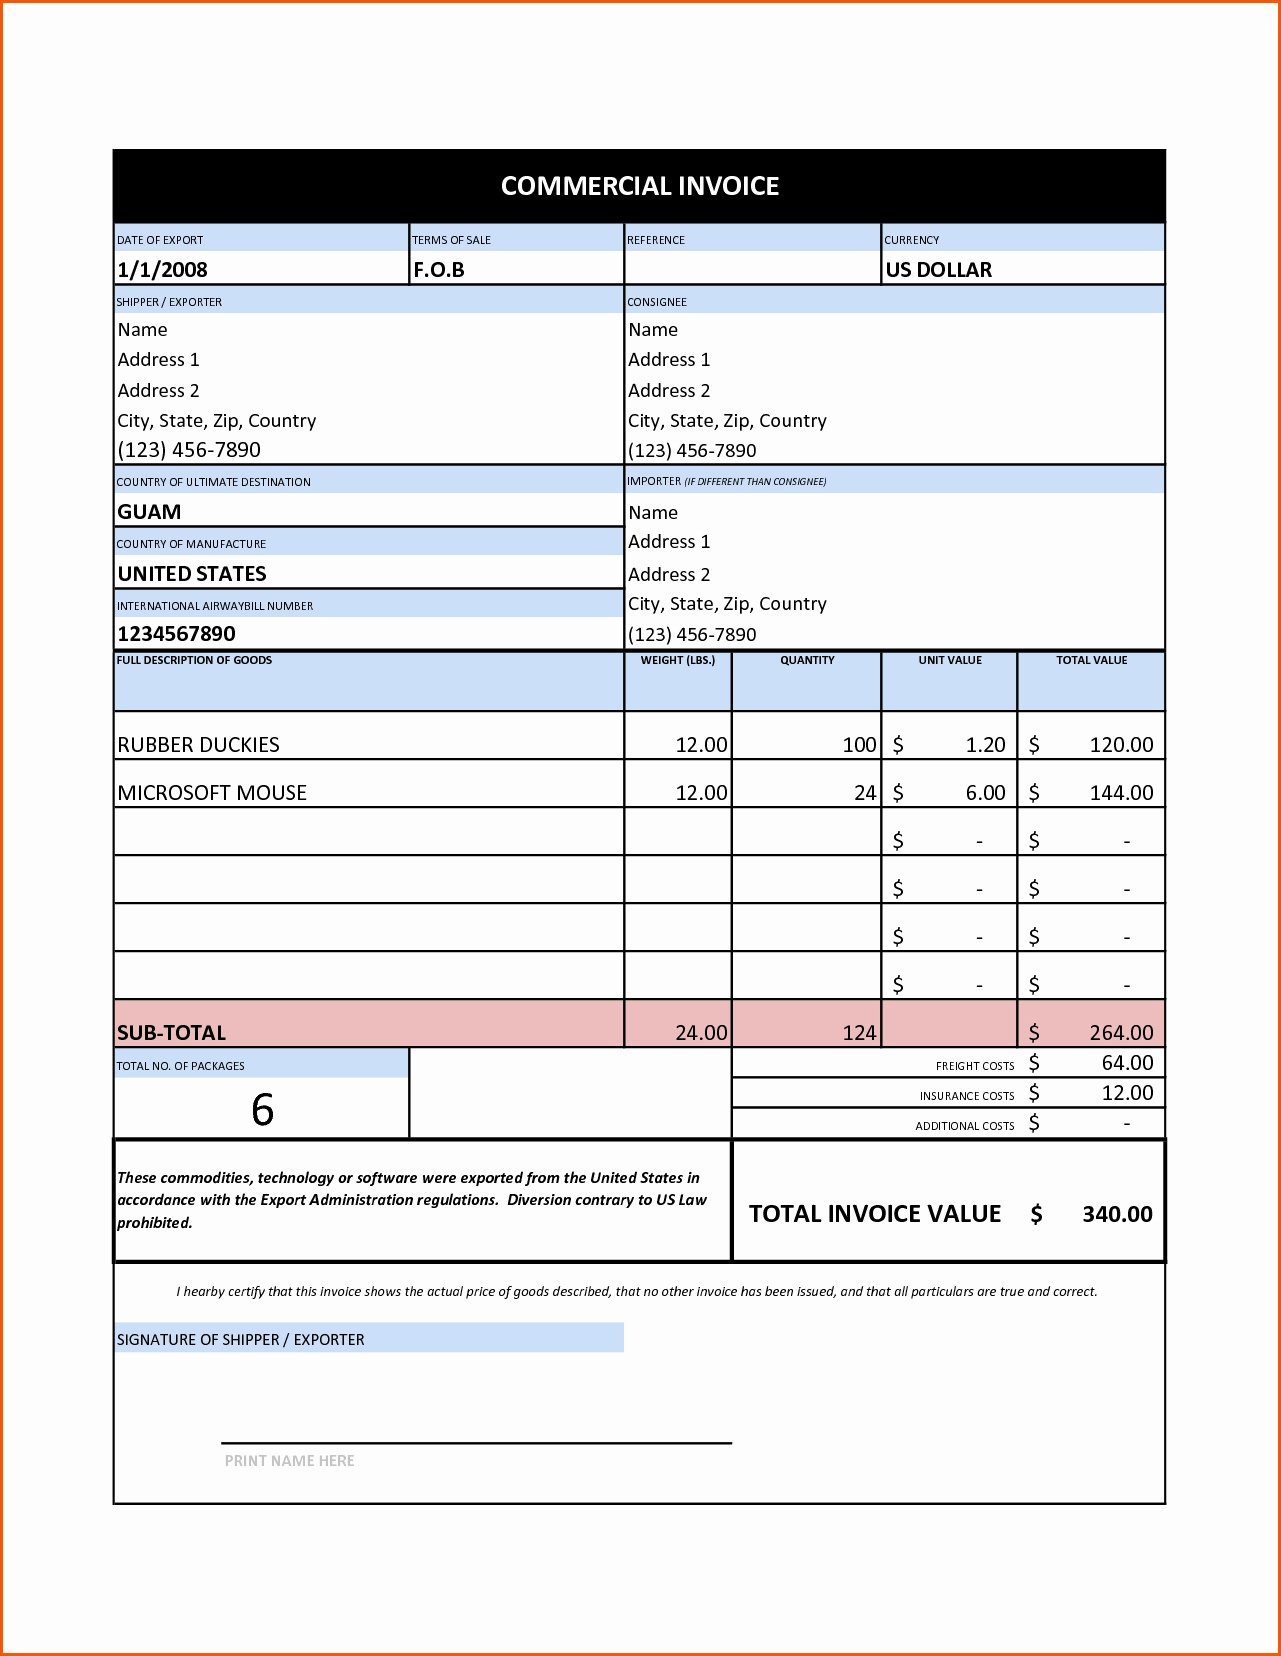 Free Commercial Invoice Template New Mercial Invoice Sample Excel Invoice Template Ideas